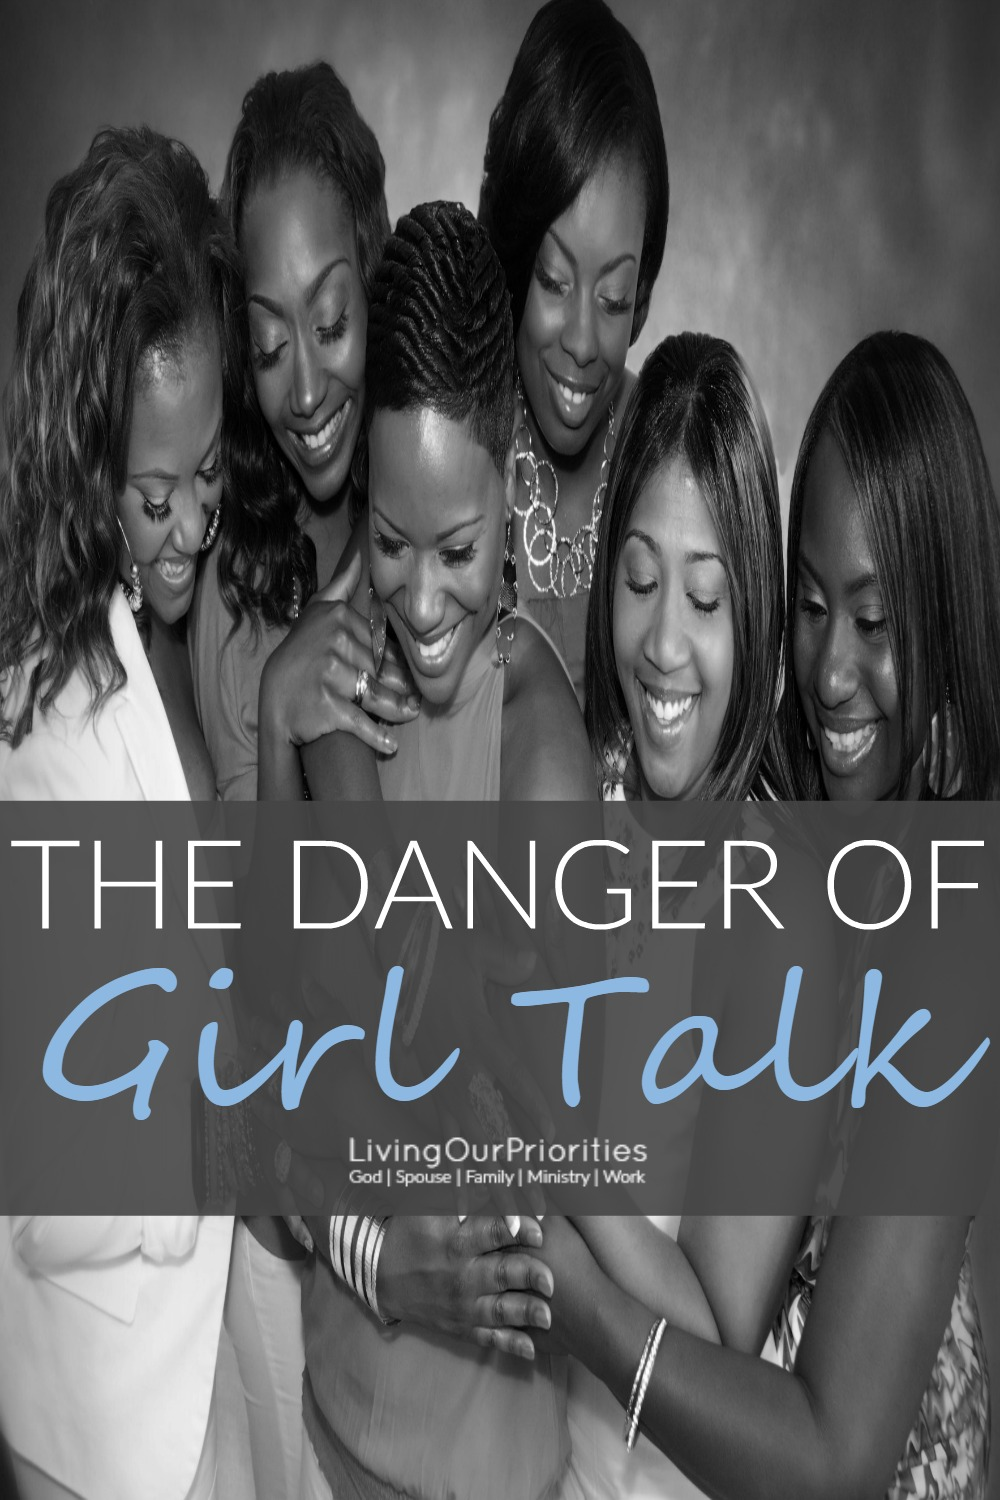 Women love to talk but there is a danger in our girl talk. Read more to learn how to discern the difference between girl talk or gossip.